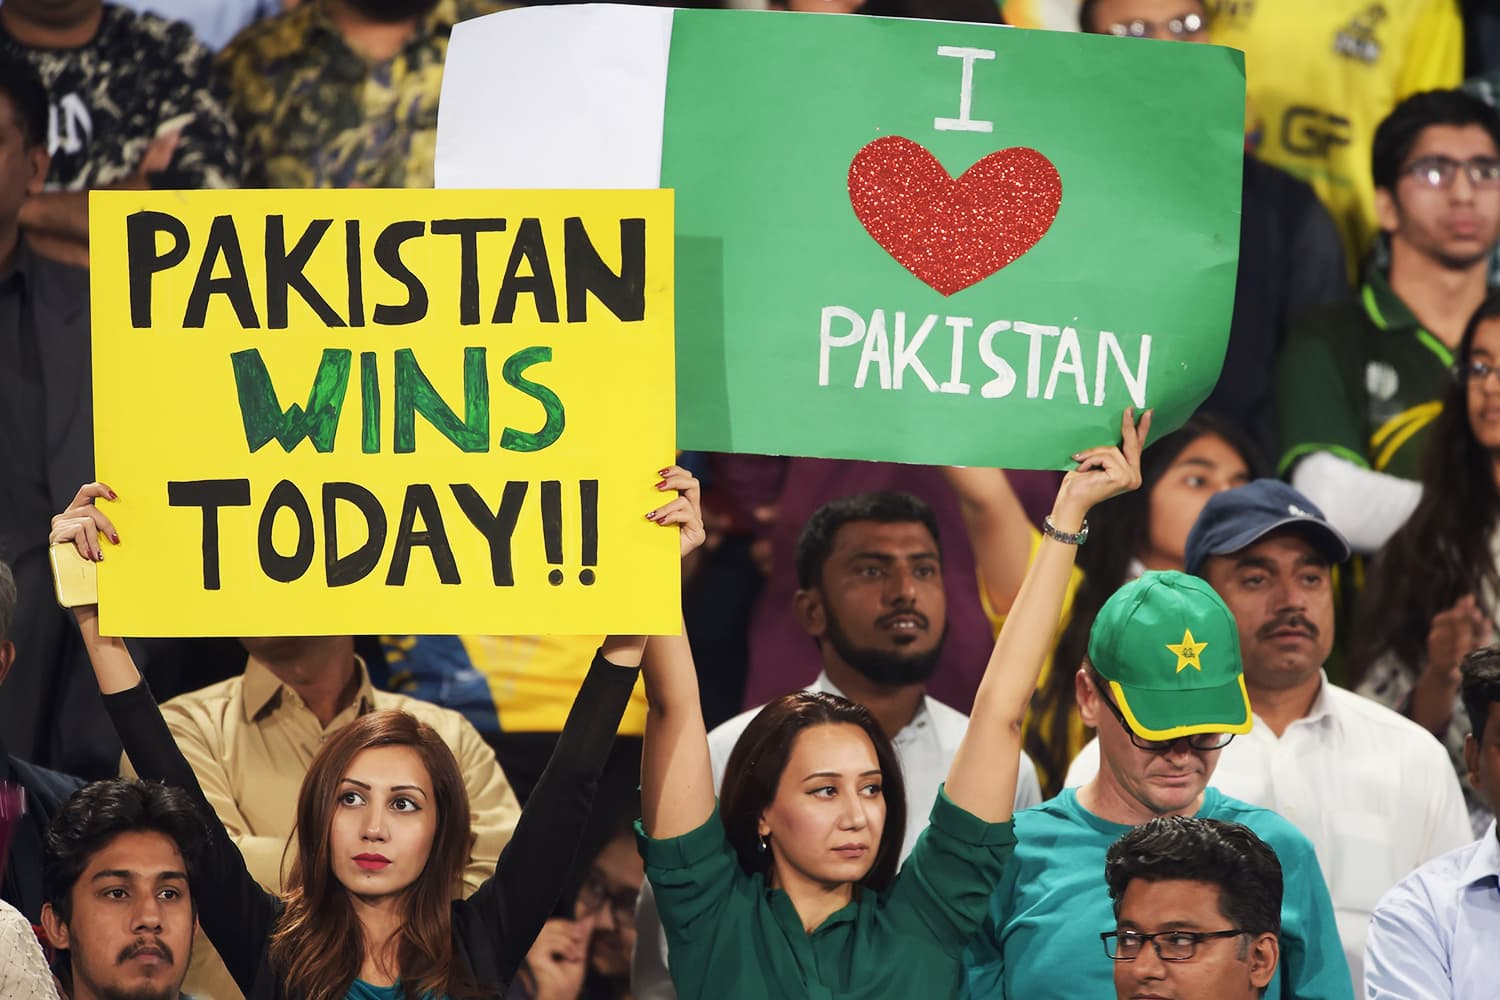 Spectators hold up placards prior to the start of the final cricket match of the PSL. ─ AFP